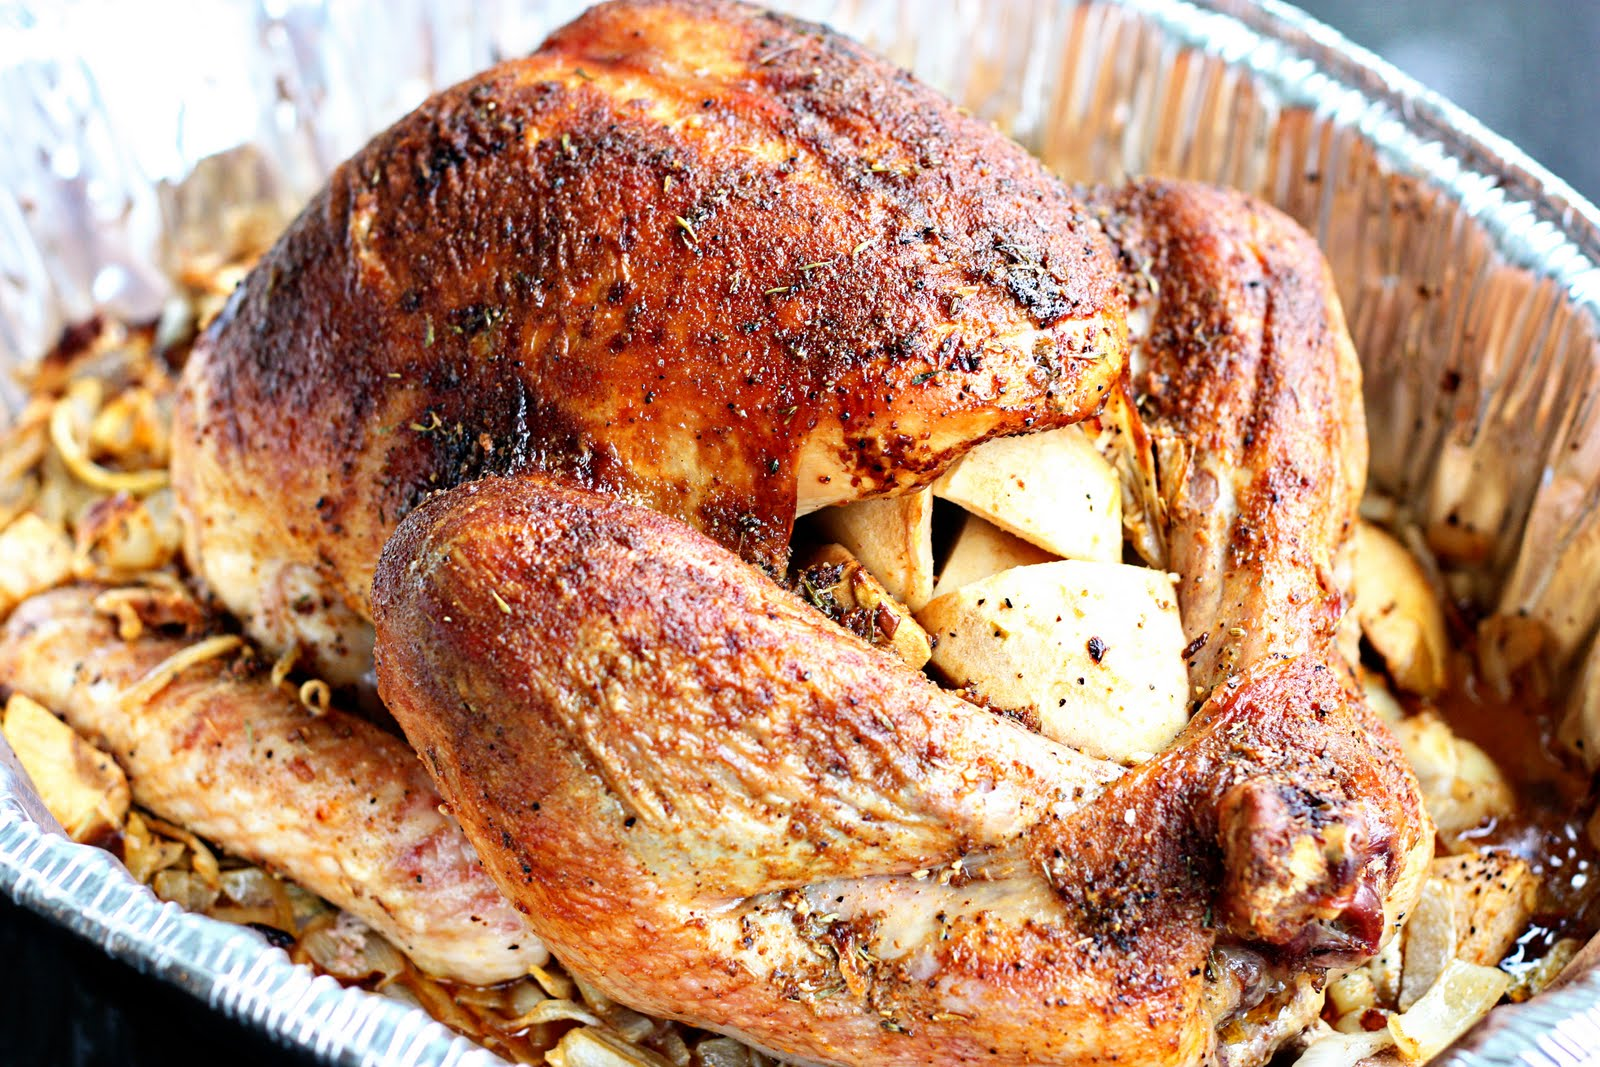 Delightful Bitefuls: Spice-Rubbed Turkey